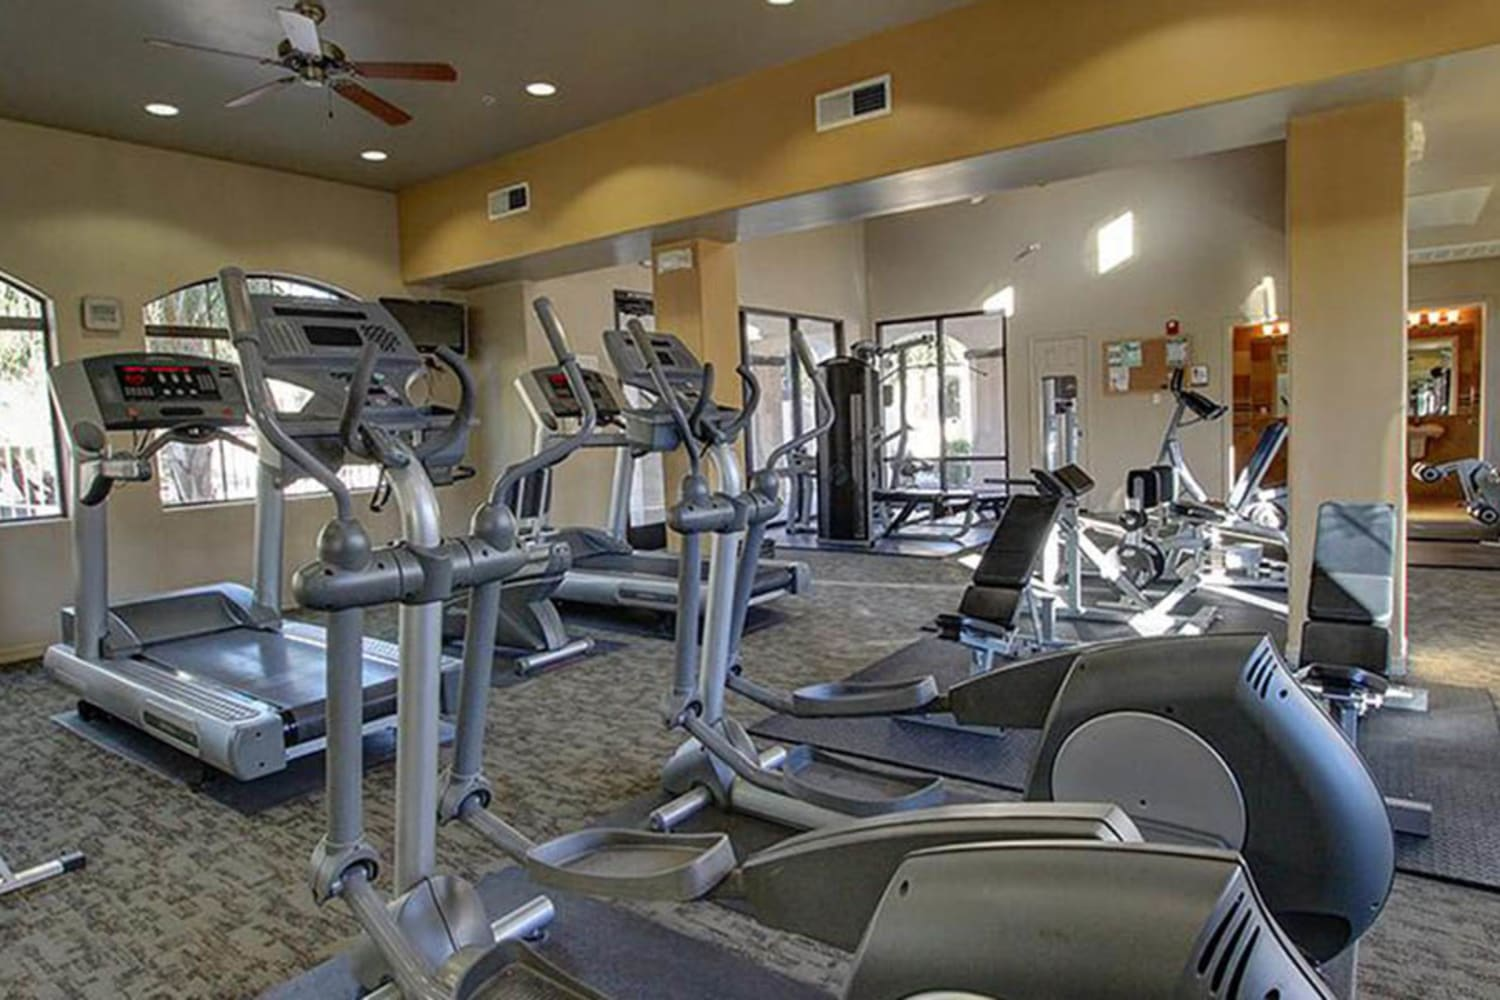 Enjoy having access to a fitness center at Dobson 2222 in Chandler, Arizona